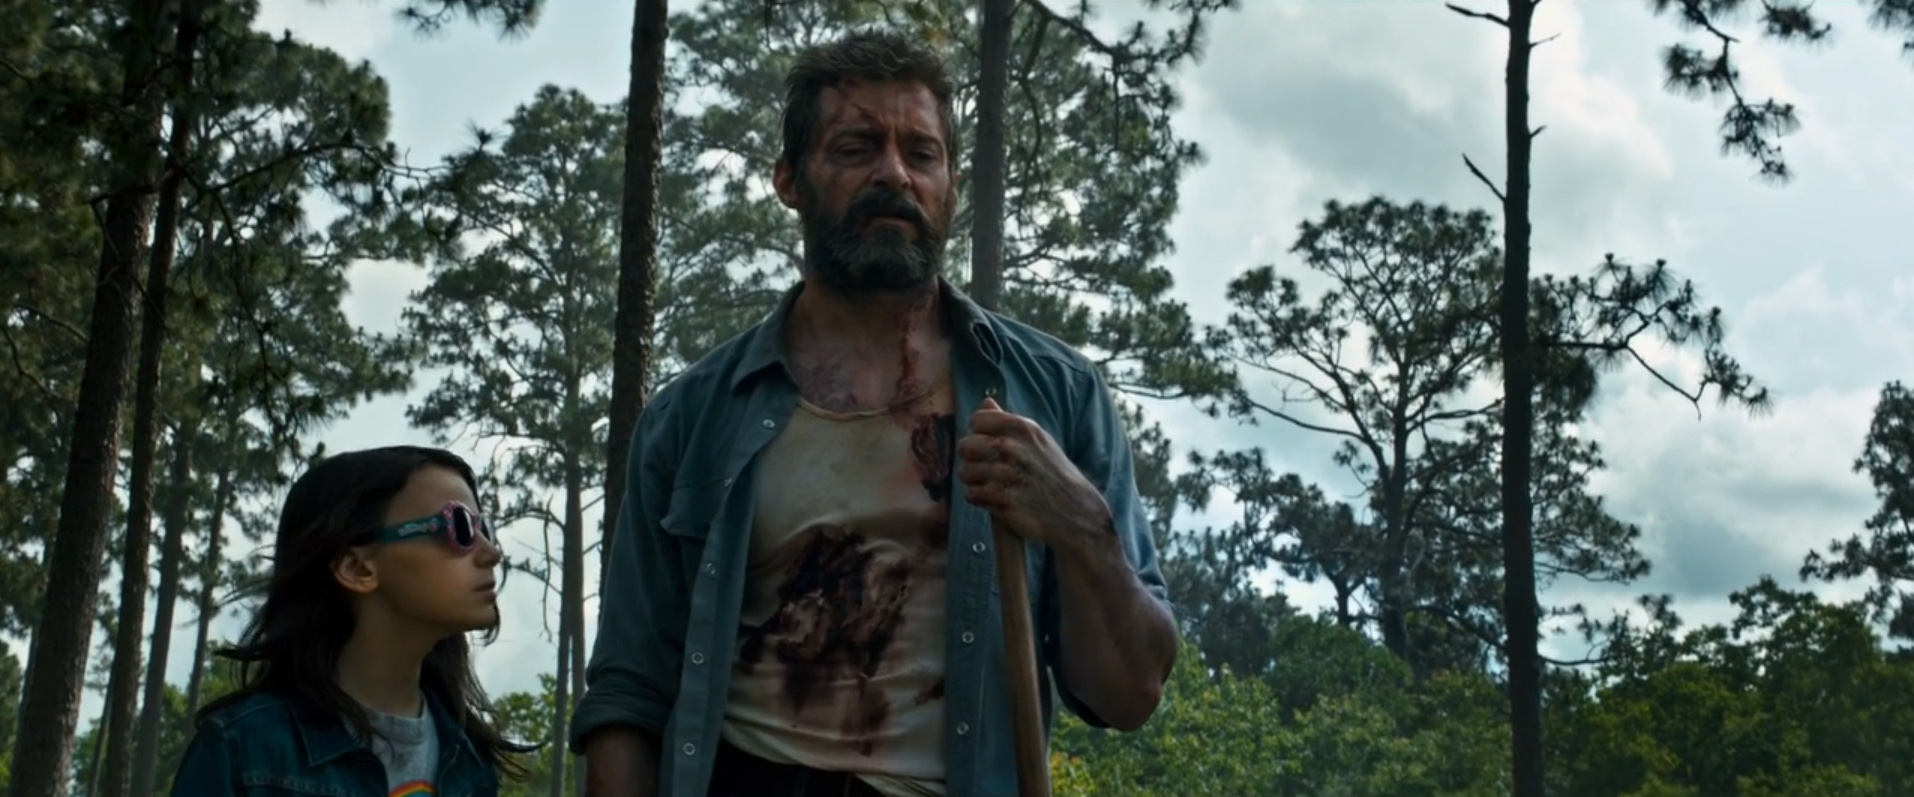 logan-movie-gallery-37-206335